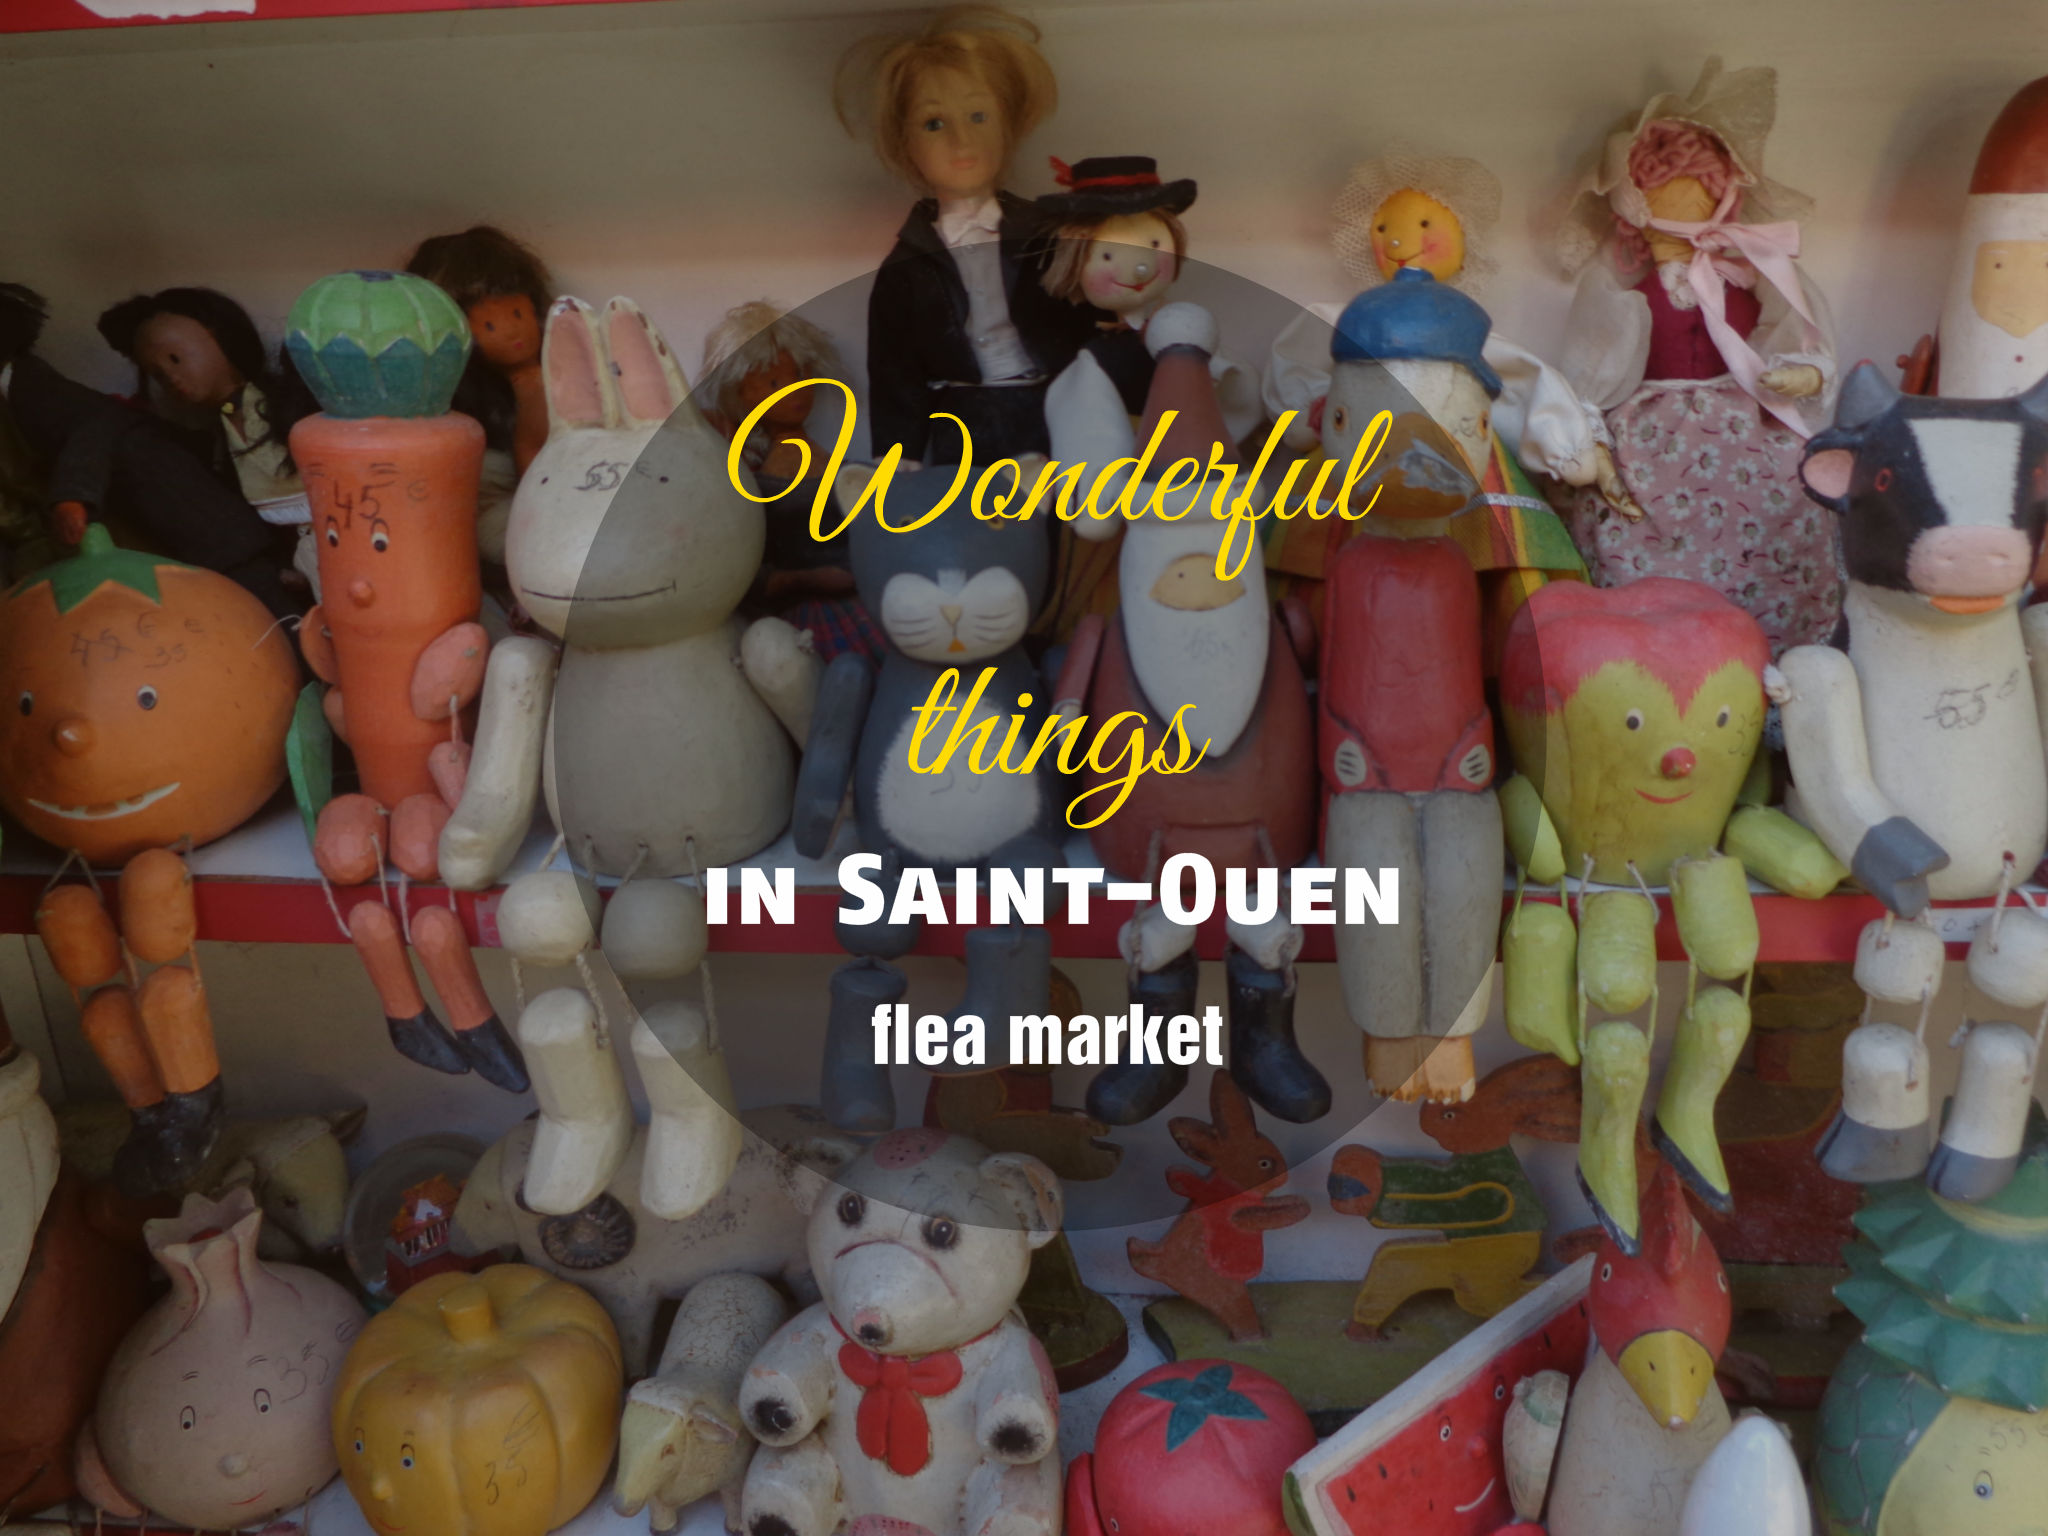 Wonderful things you can find in Saint Ouen flea market, Paris